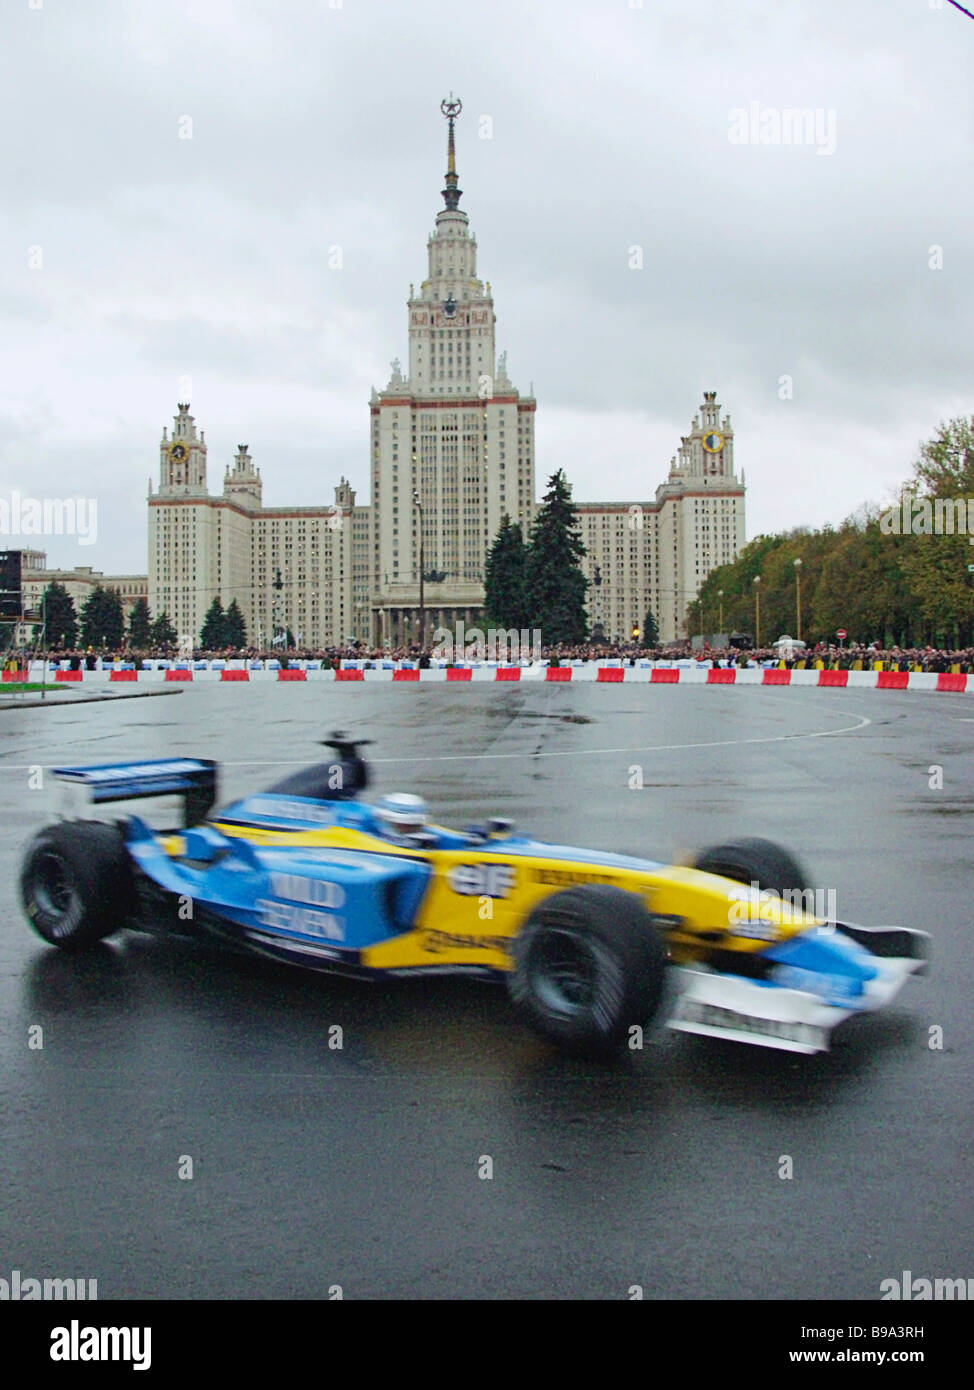 The first Formula One race in Moscow Jarno Trulli and Fernando Alonso of the Reno team encircled a special route - Stock Image